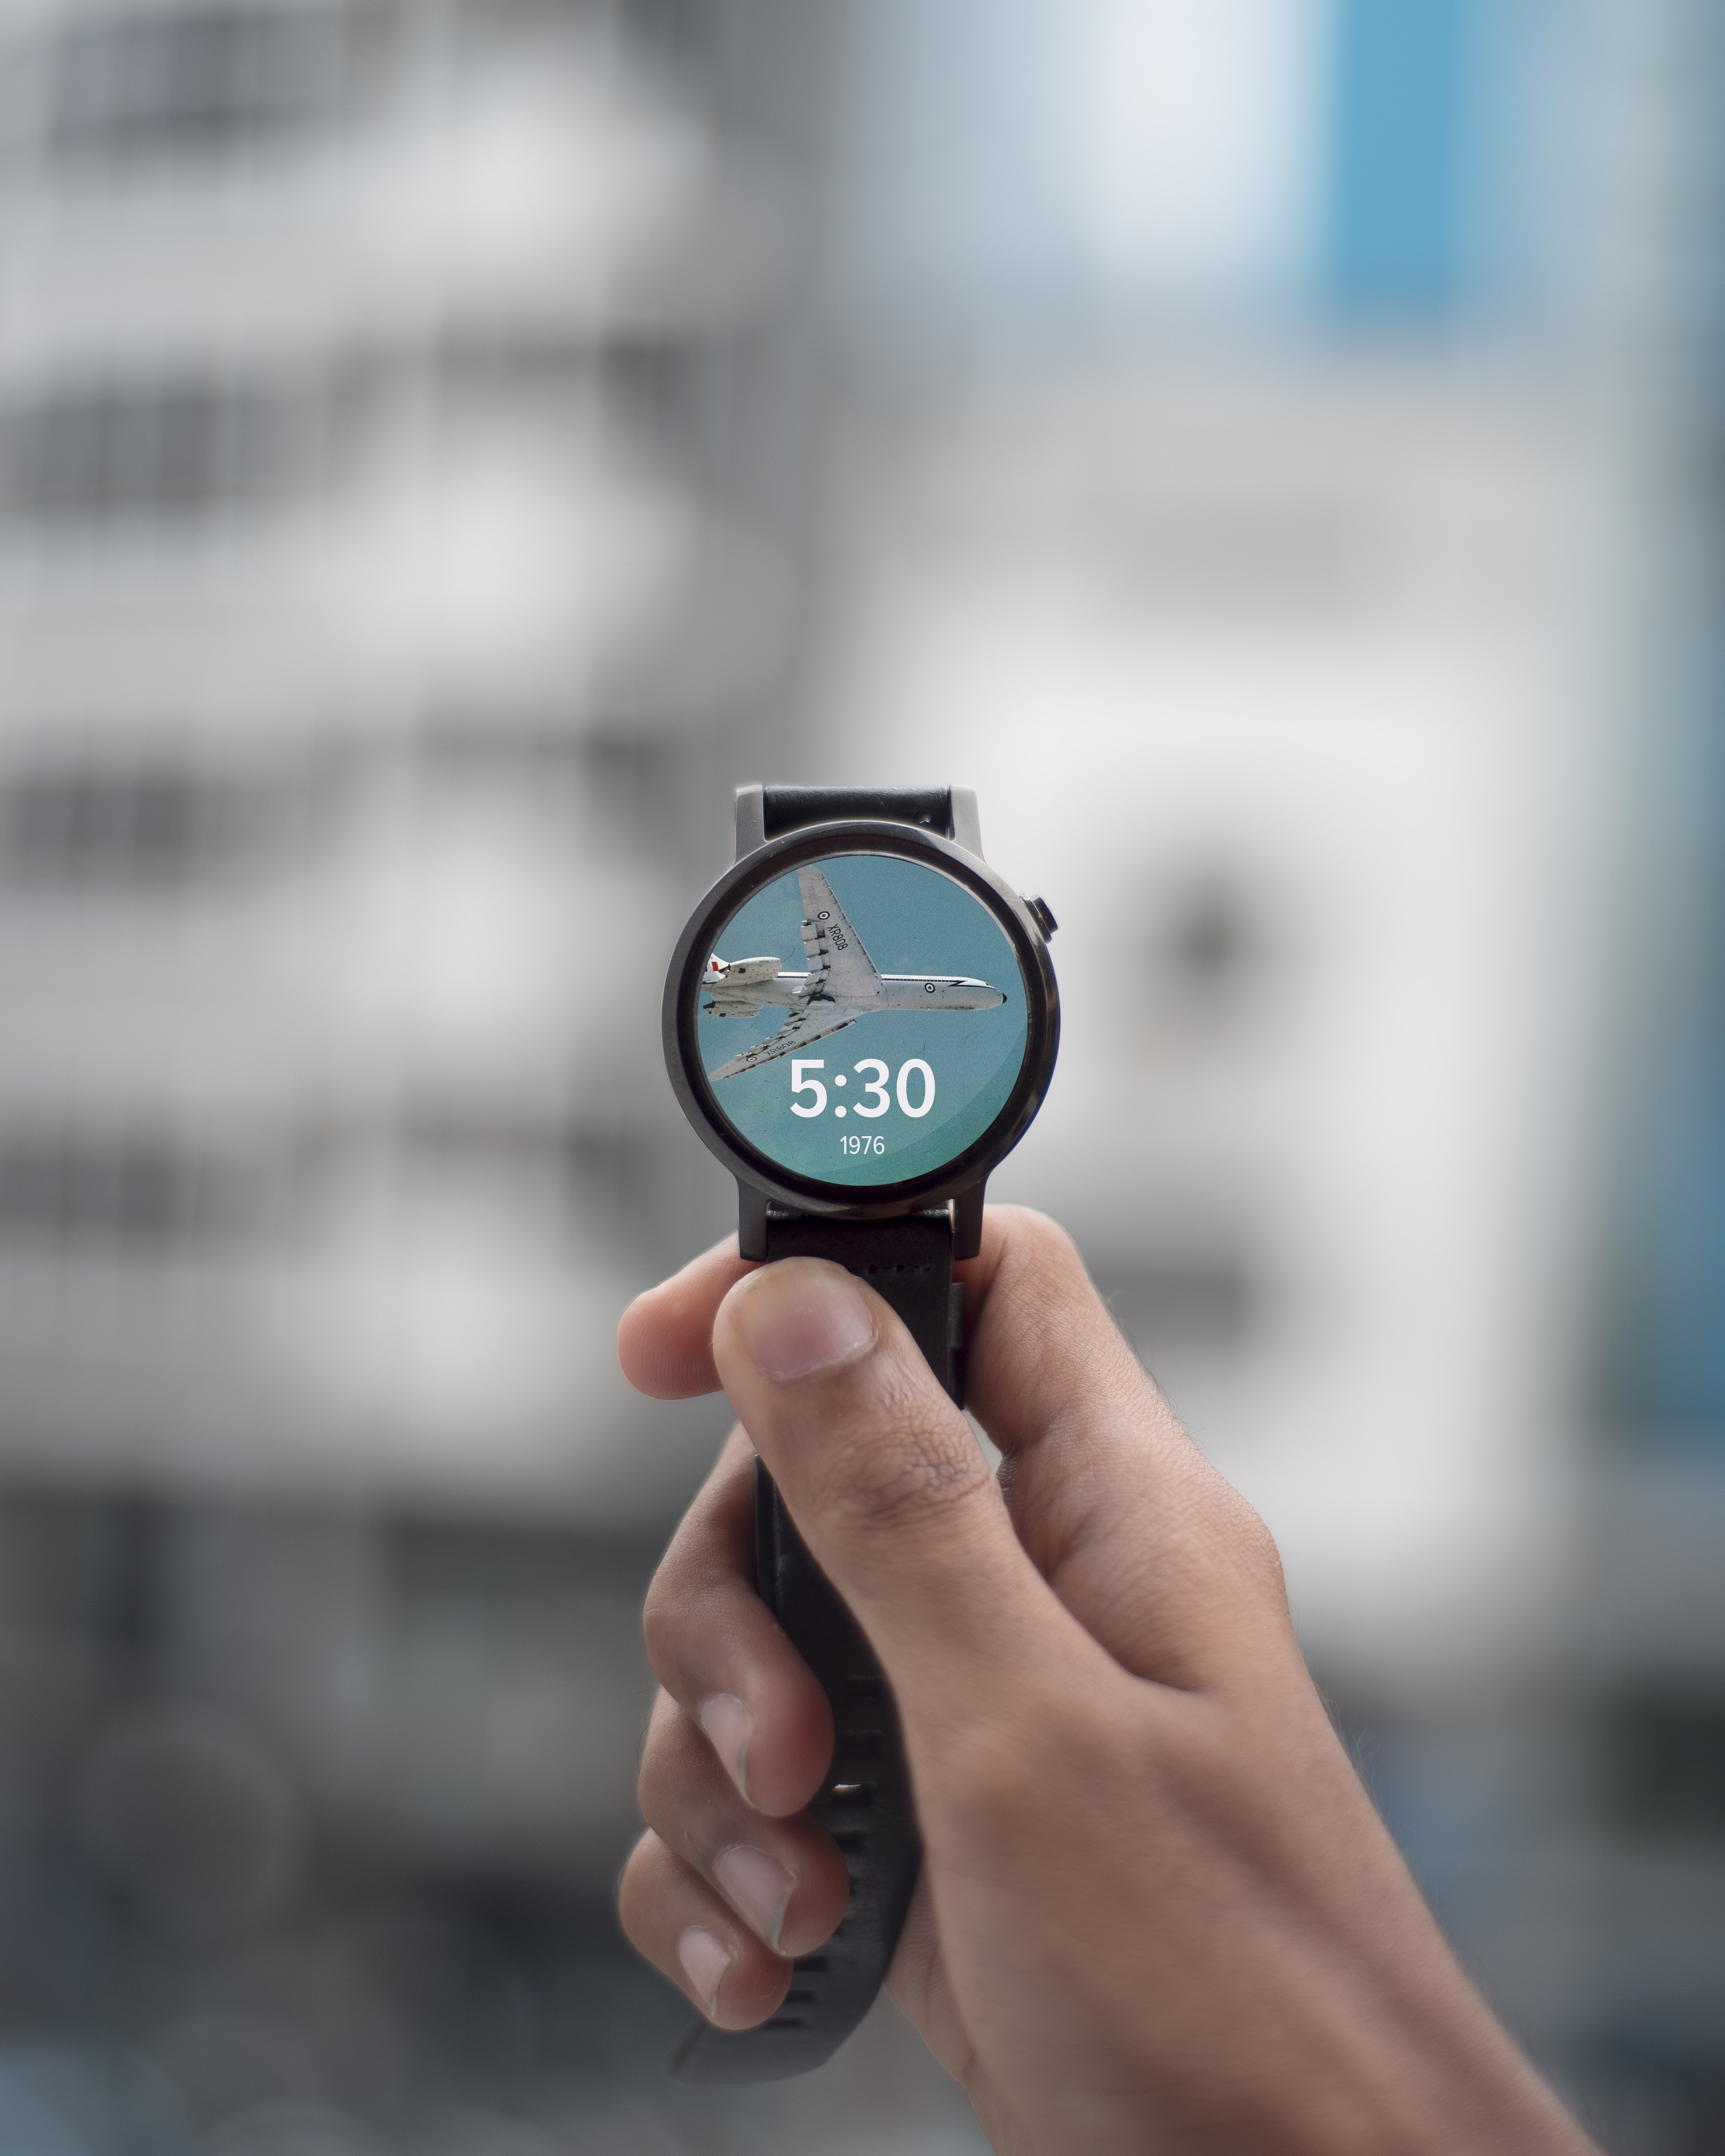 selective focus photography of person holding black smartwatch displaying 5:30